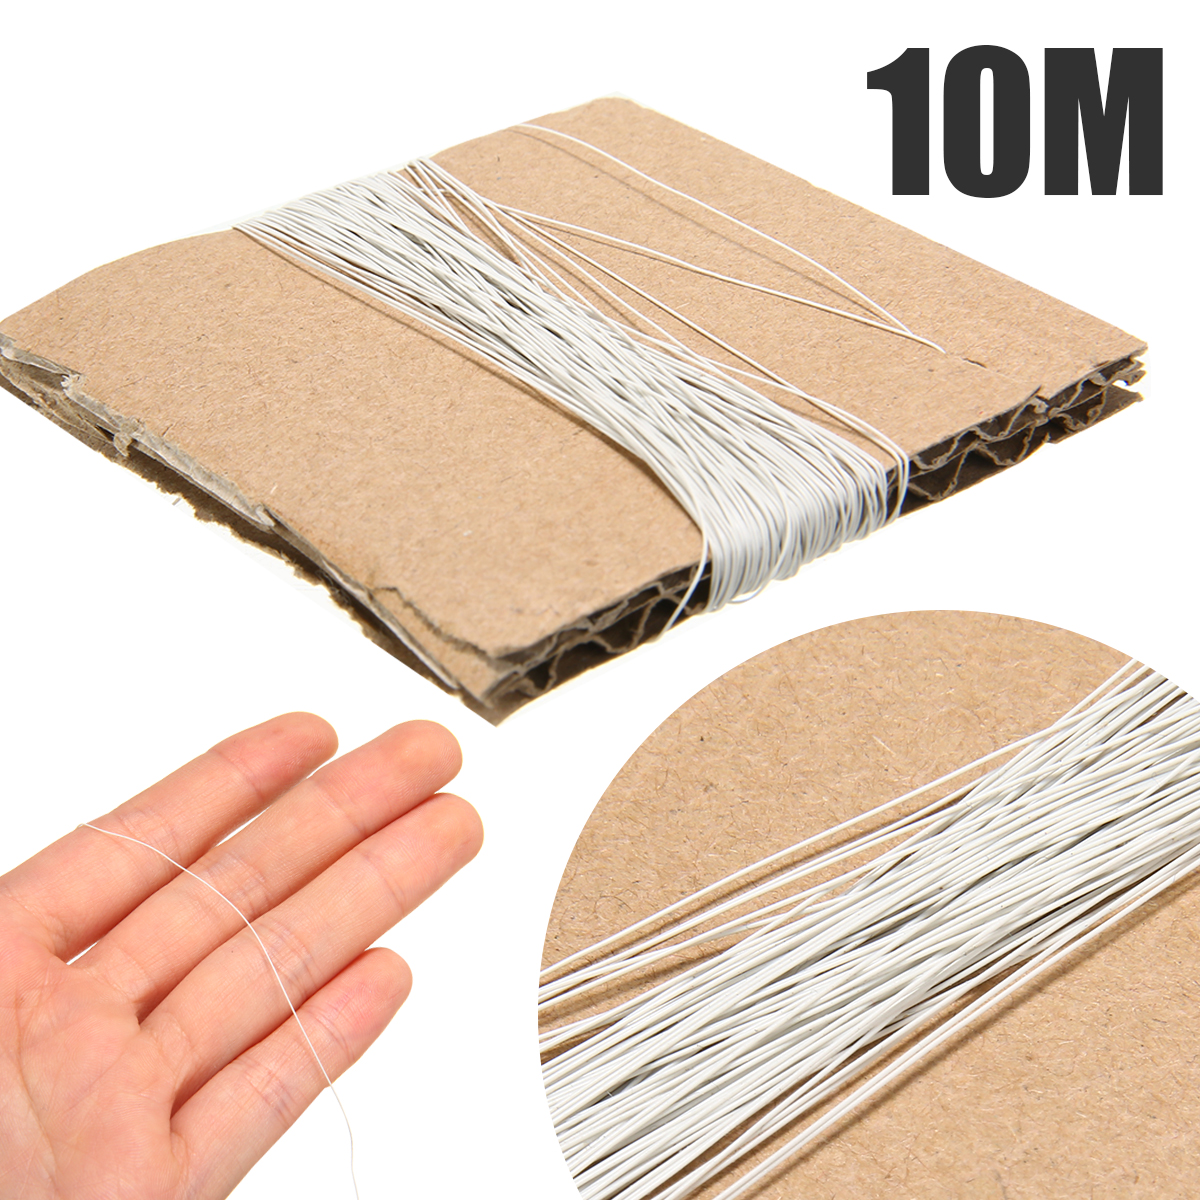 1pcs UL10064 36AWG 10m White 0.28mm Solder Micro Litz Stranded Wire Cable For Household Appliances